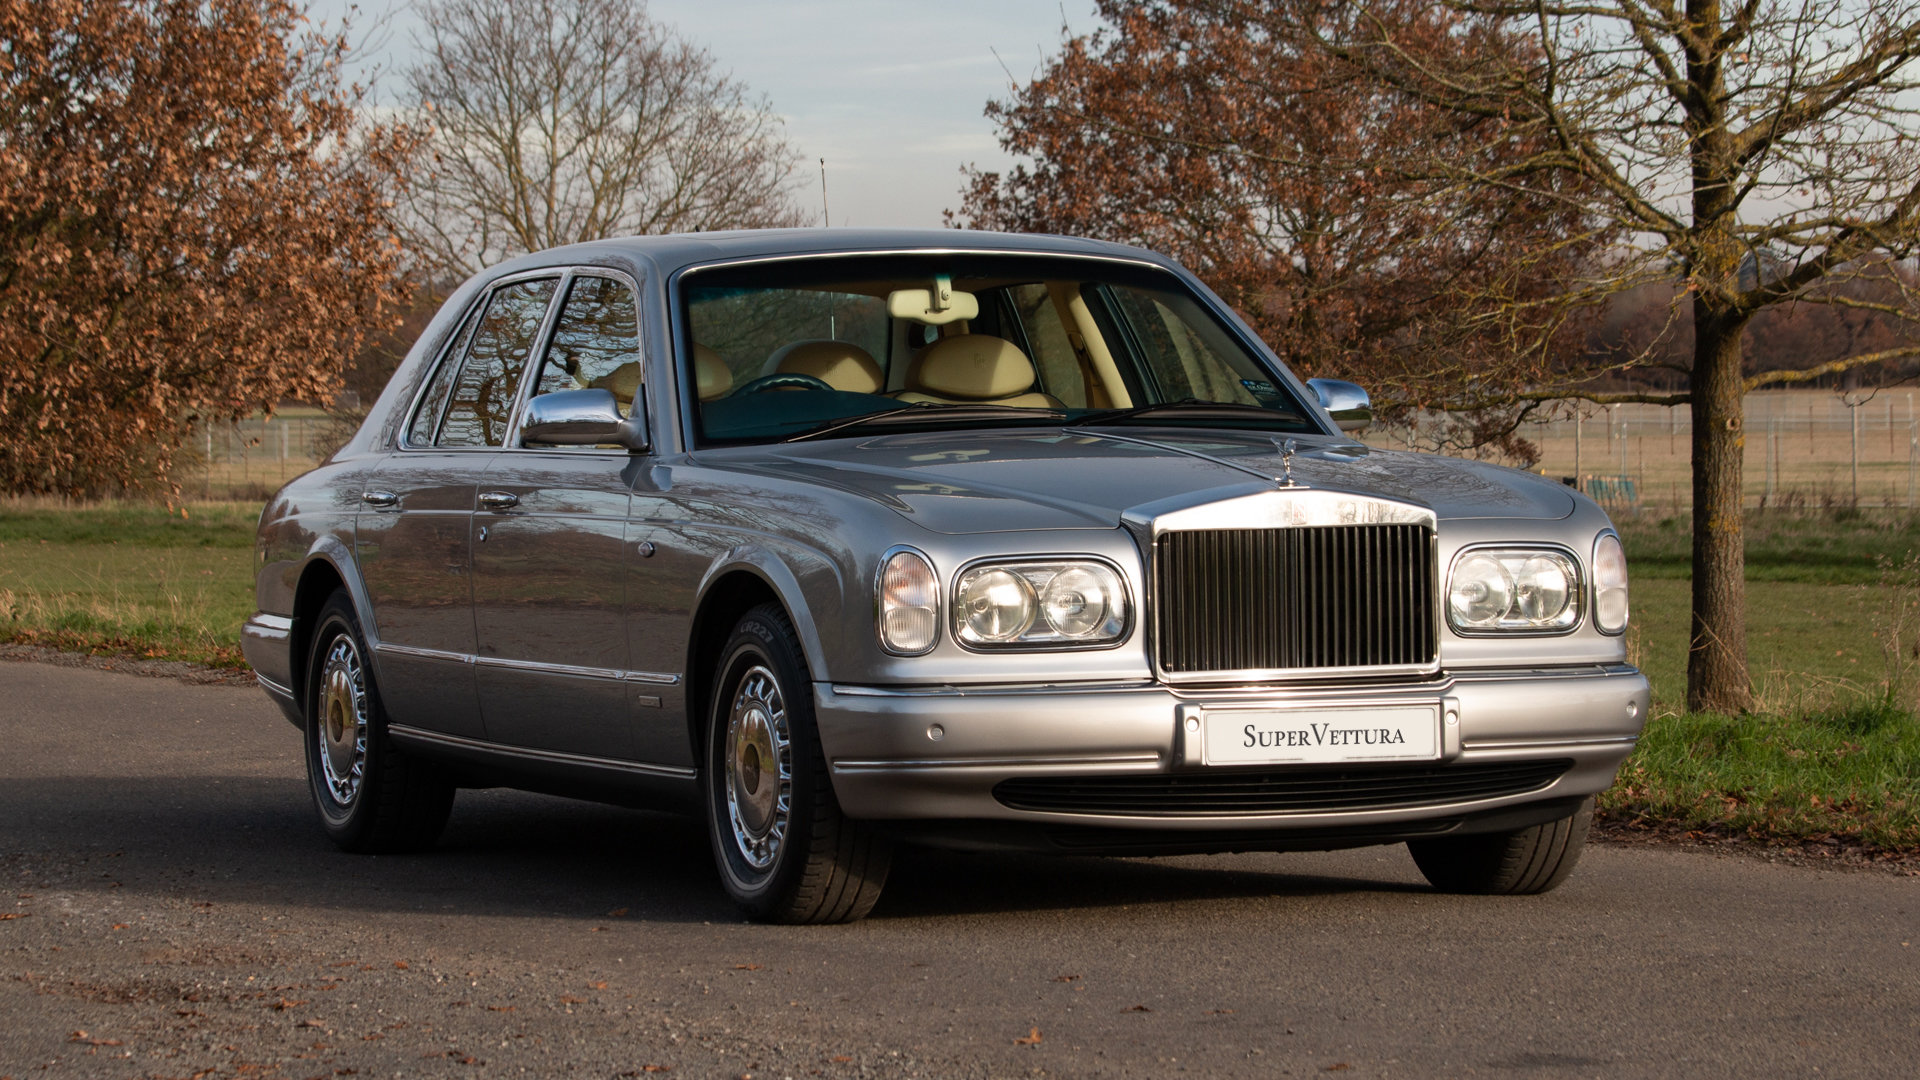 2002 Last of Line Rolls Royce Silver Seraph For Sale (picture 1 of 6)